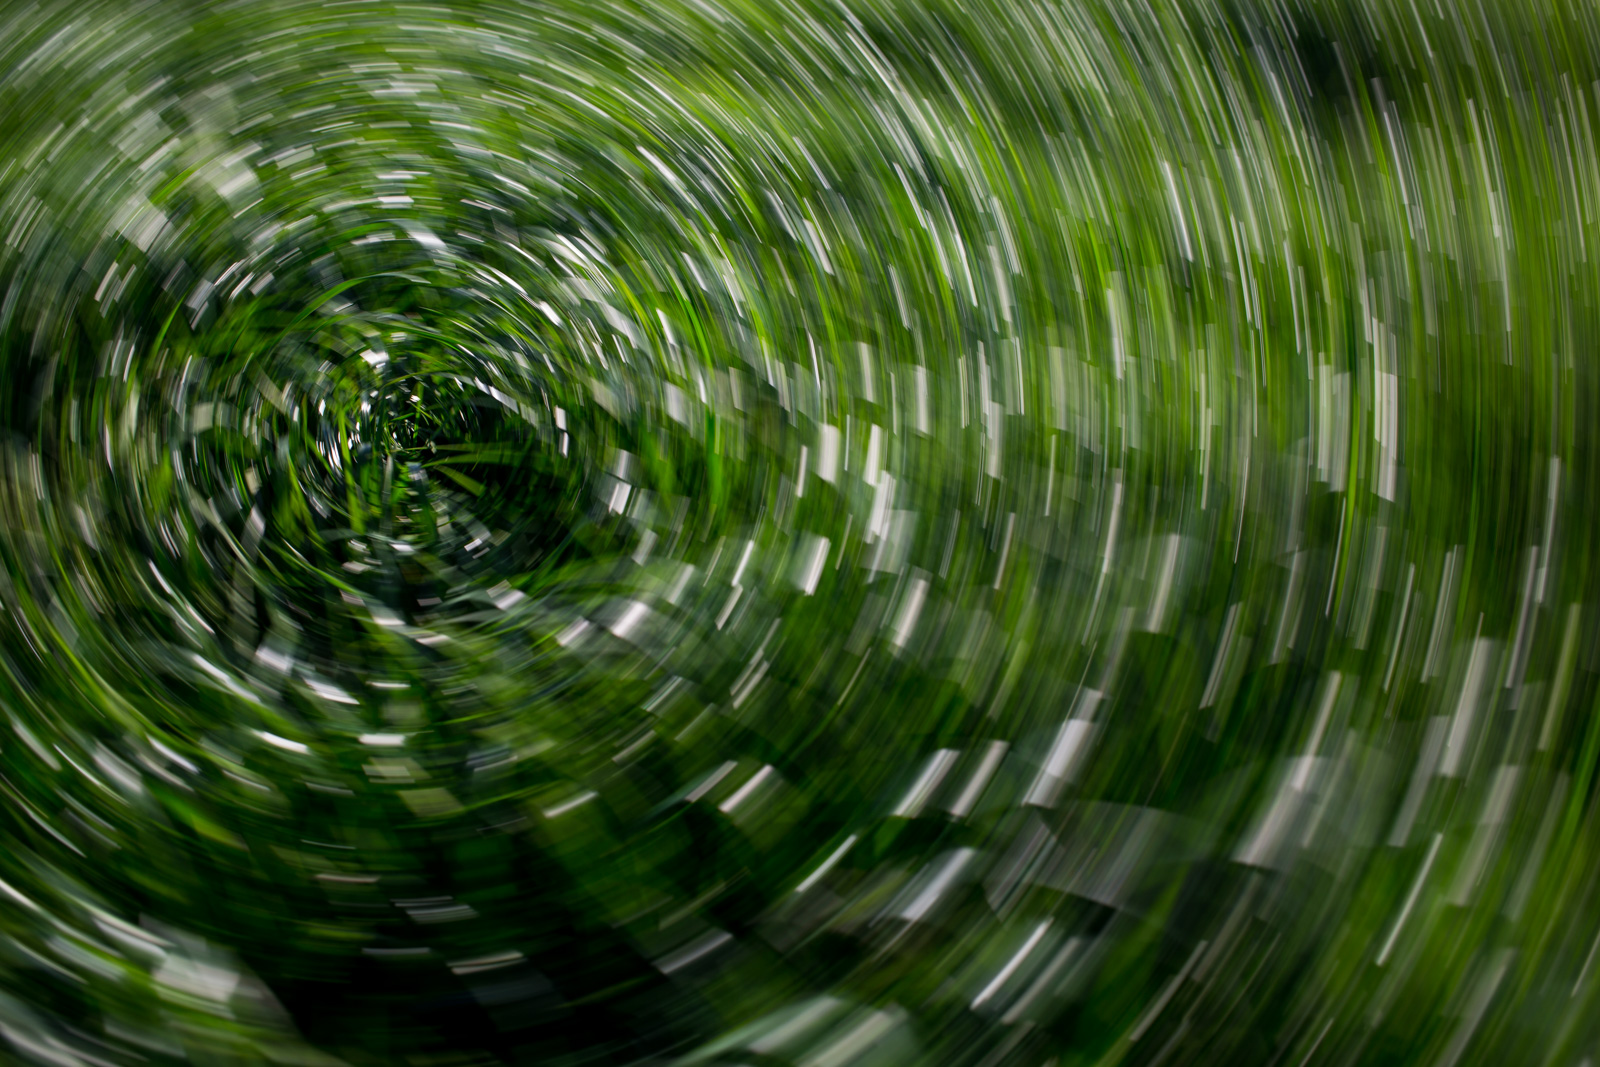 Grass is blurred into a circular pattern by spinning the camera as the photo is taken.